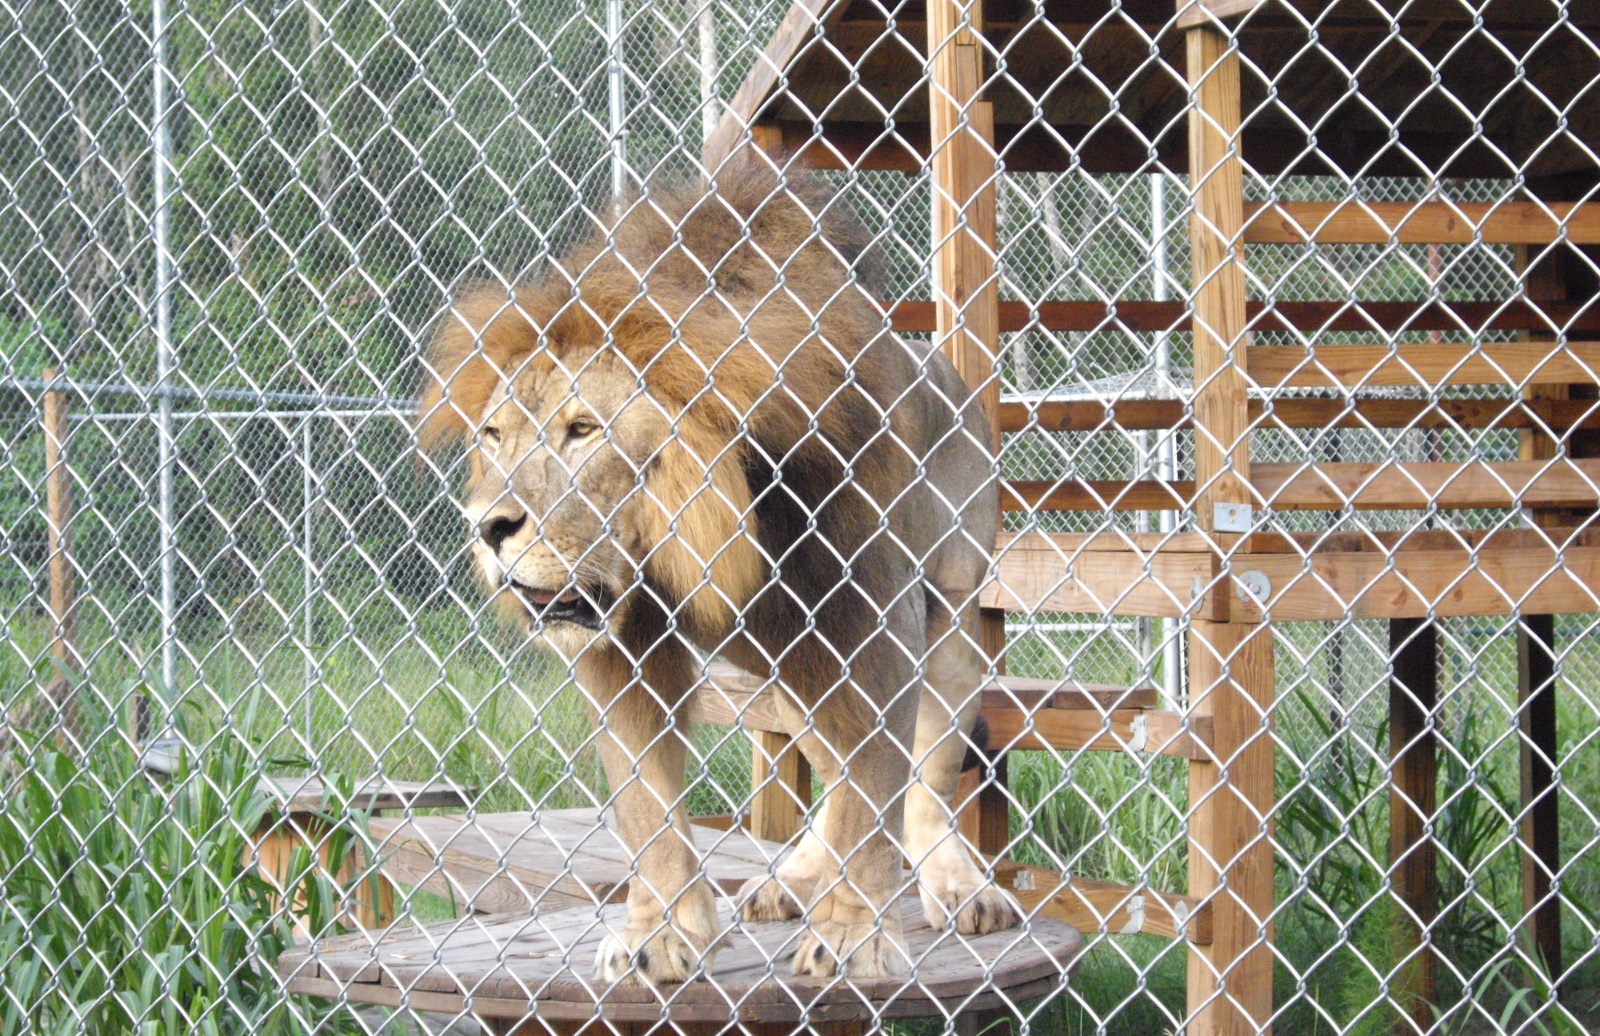 How to Tell the Difference Between a Credible Exotic Animal Sanctuary and an Abusive Animal Attraction